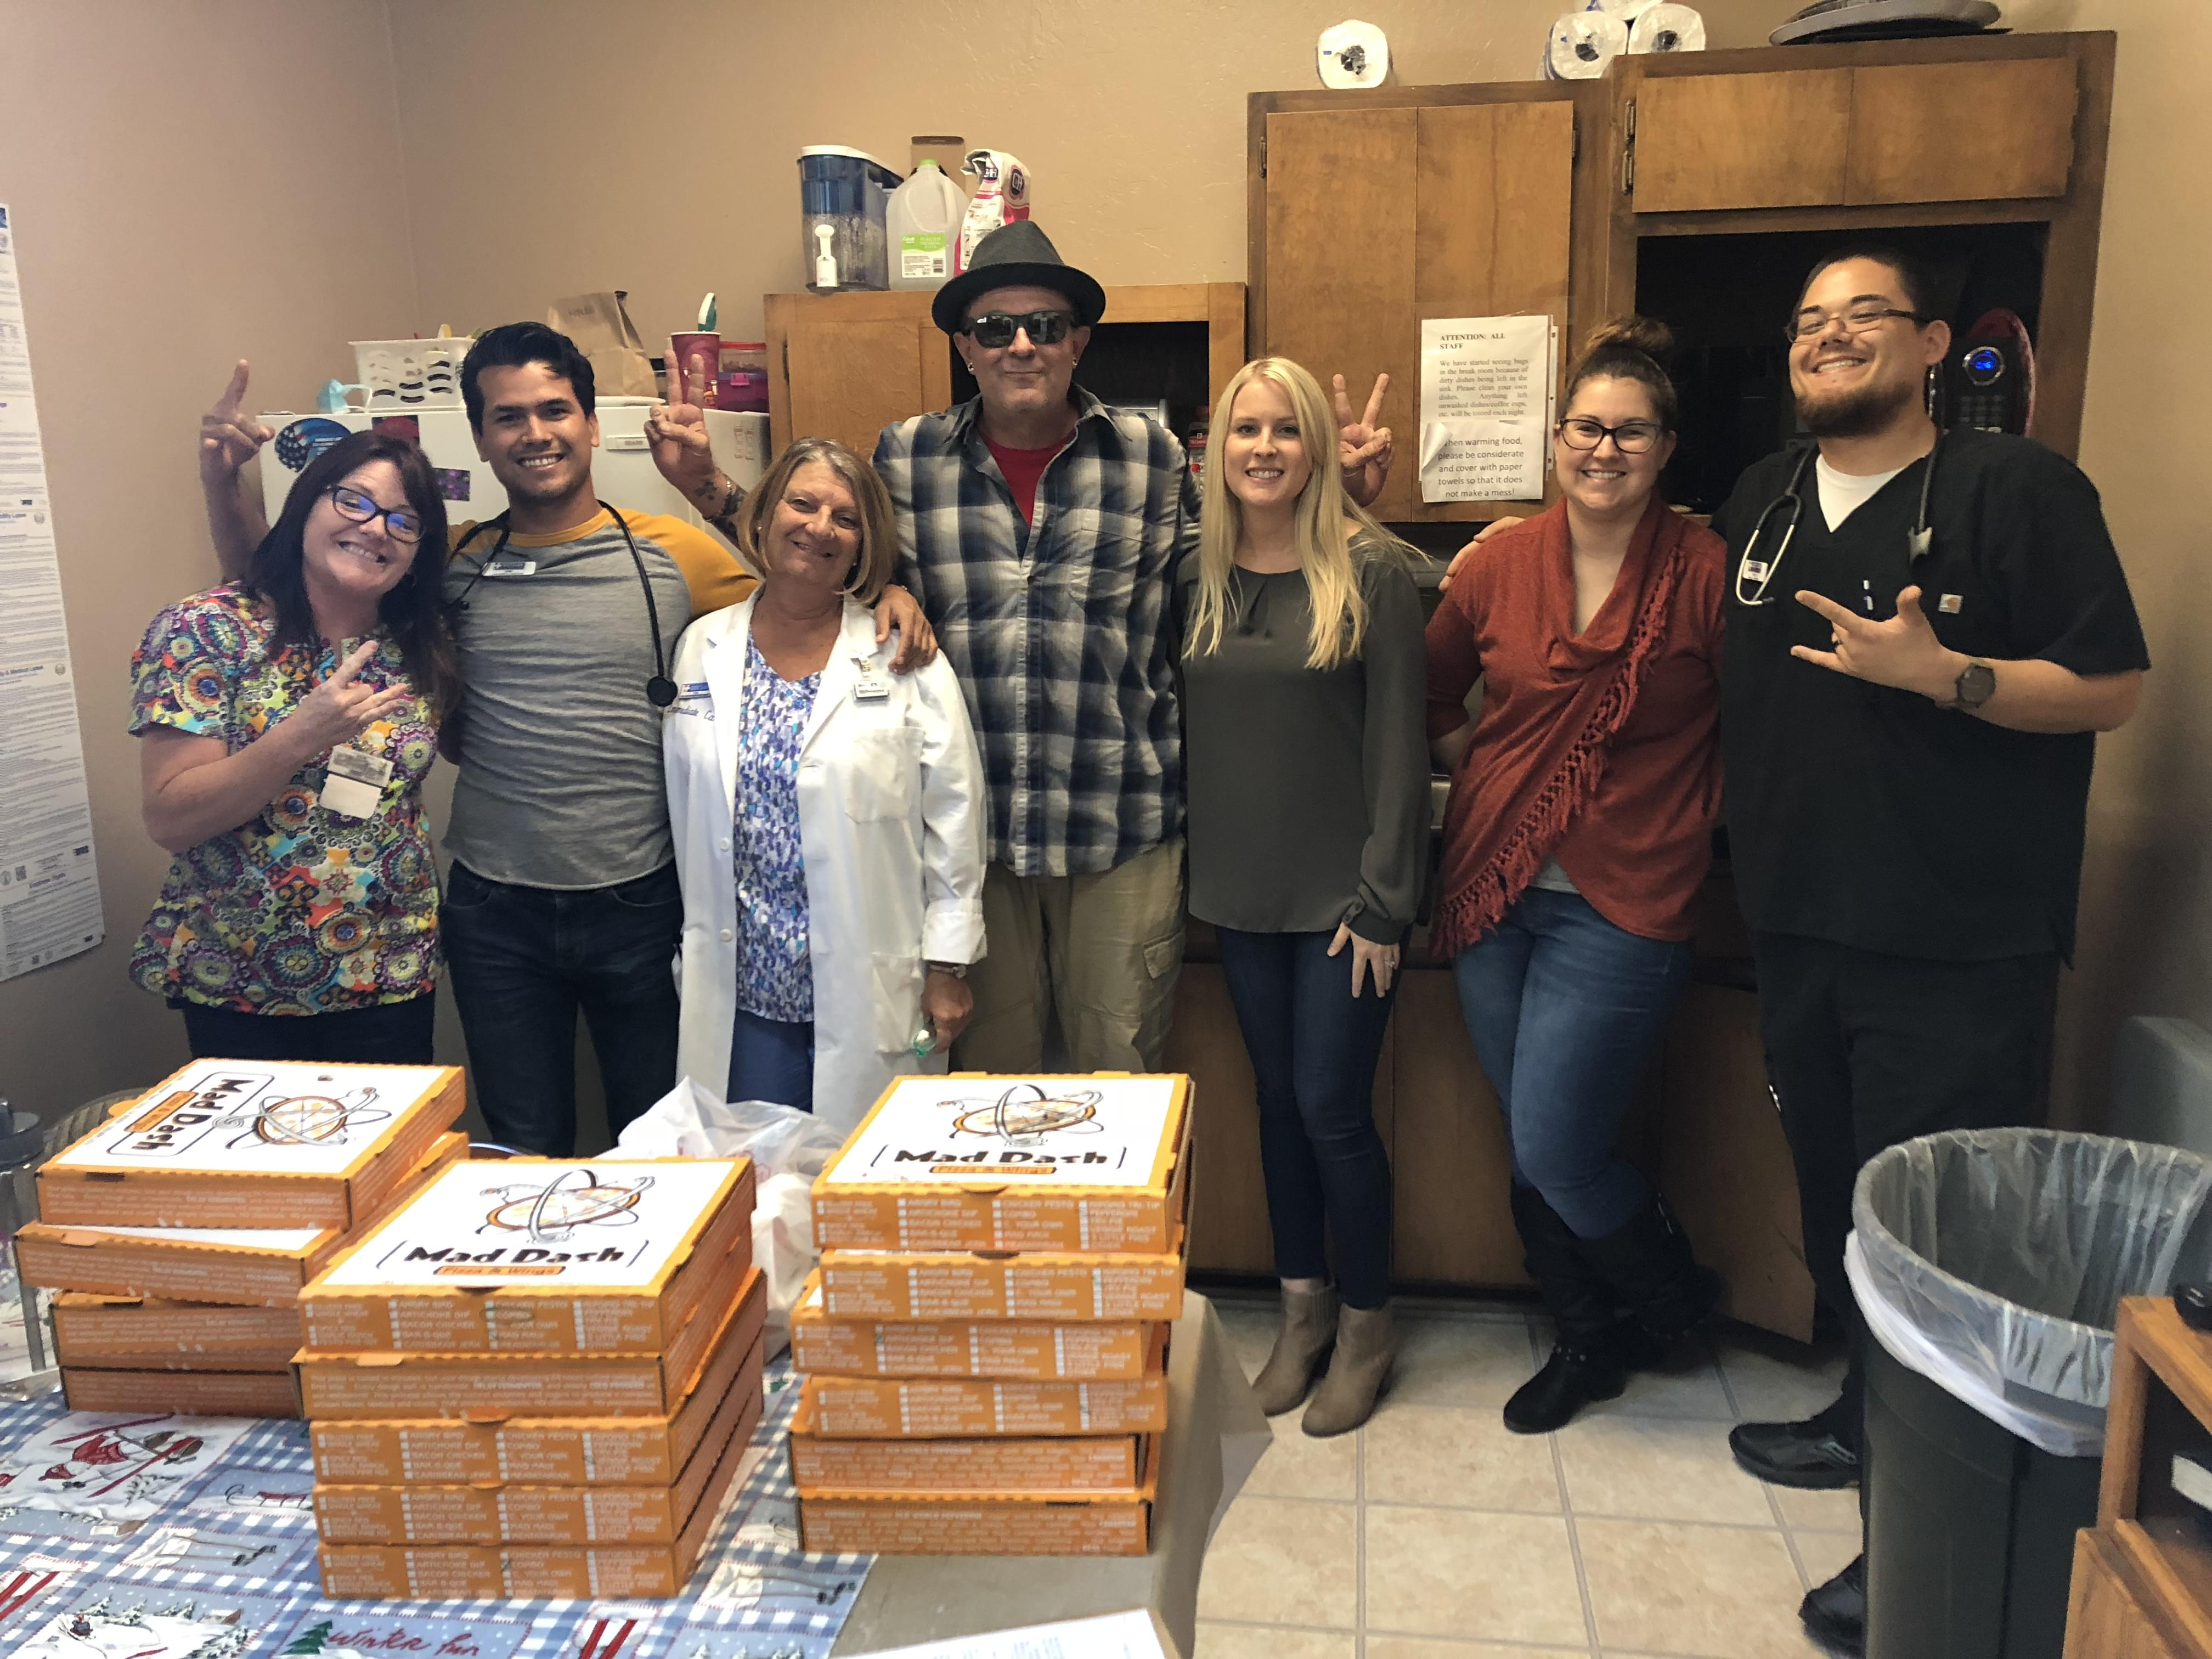 Tim Buc Moore with winner and crew at Valley Clinical Lab inside Immediate Care in Chico for the Z-Rock Munch Box